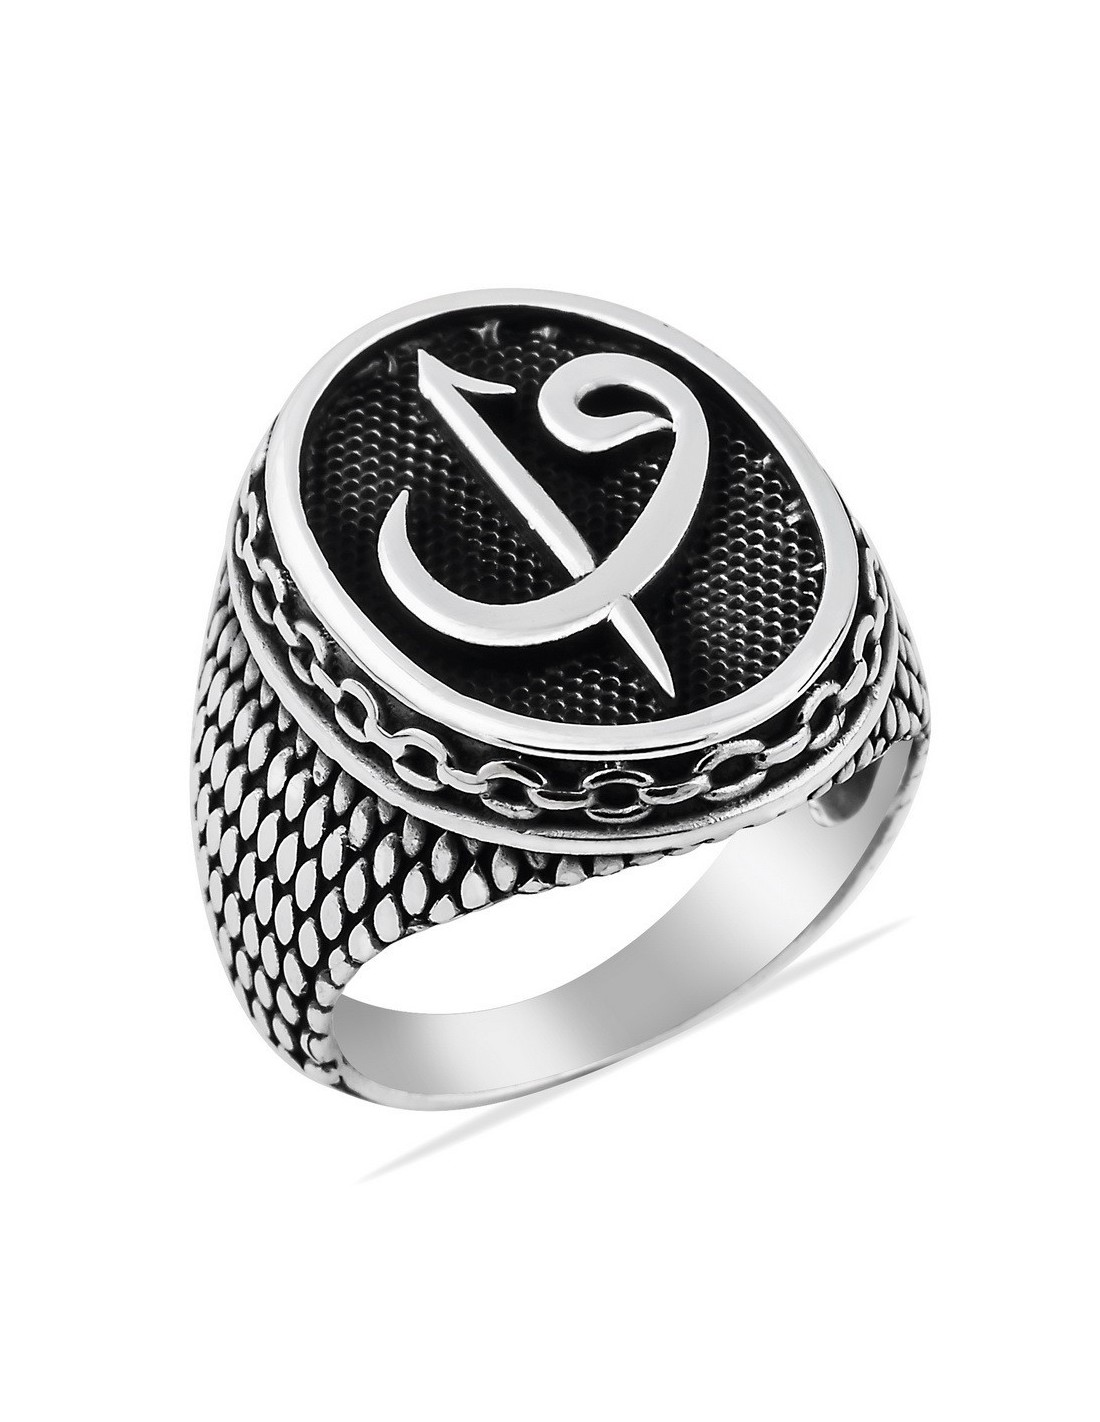 mens ring in sterling silver from turkstyleshop